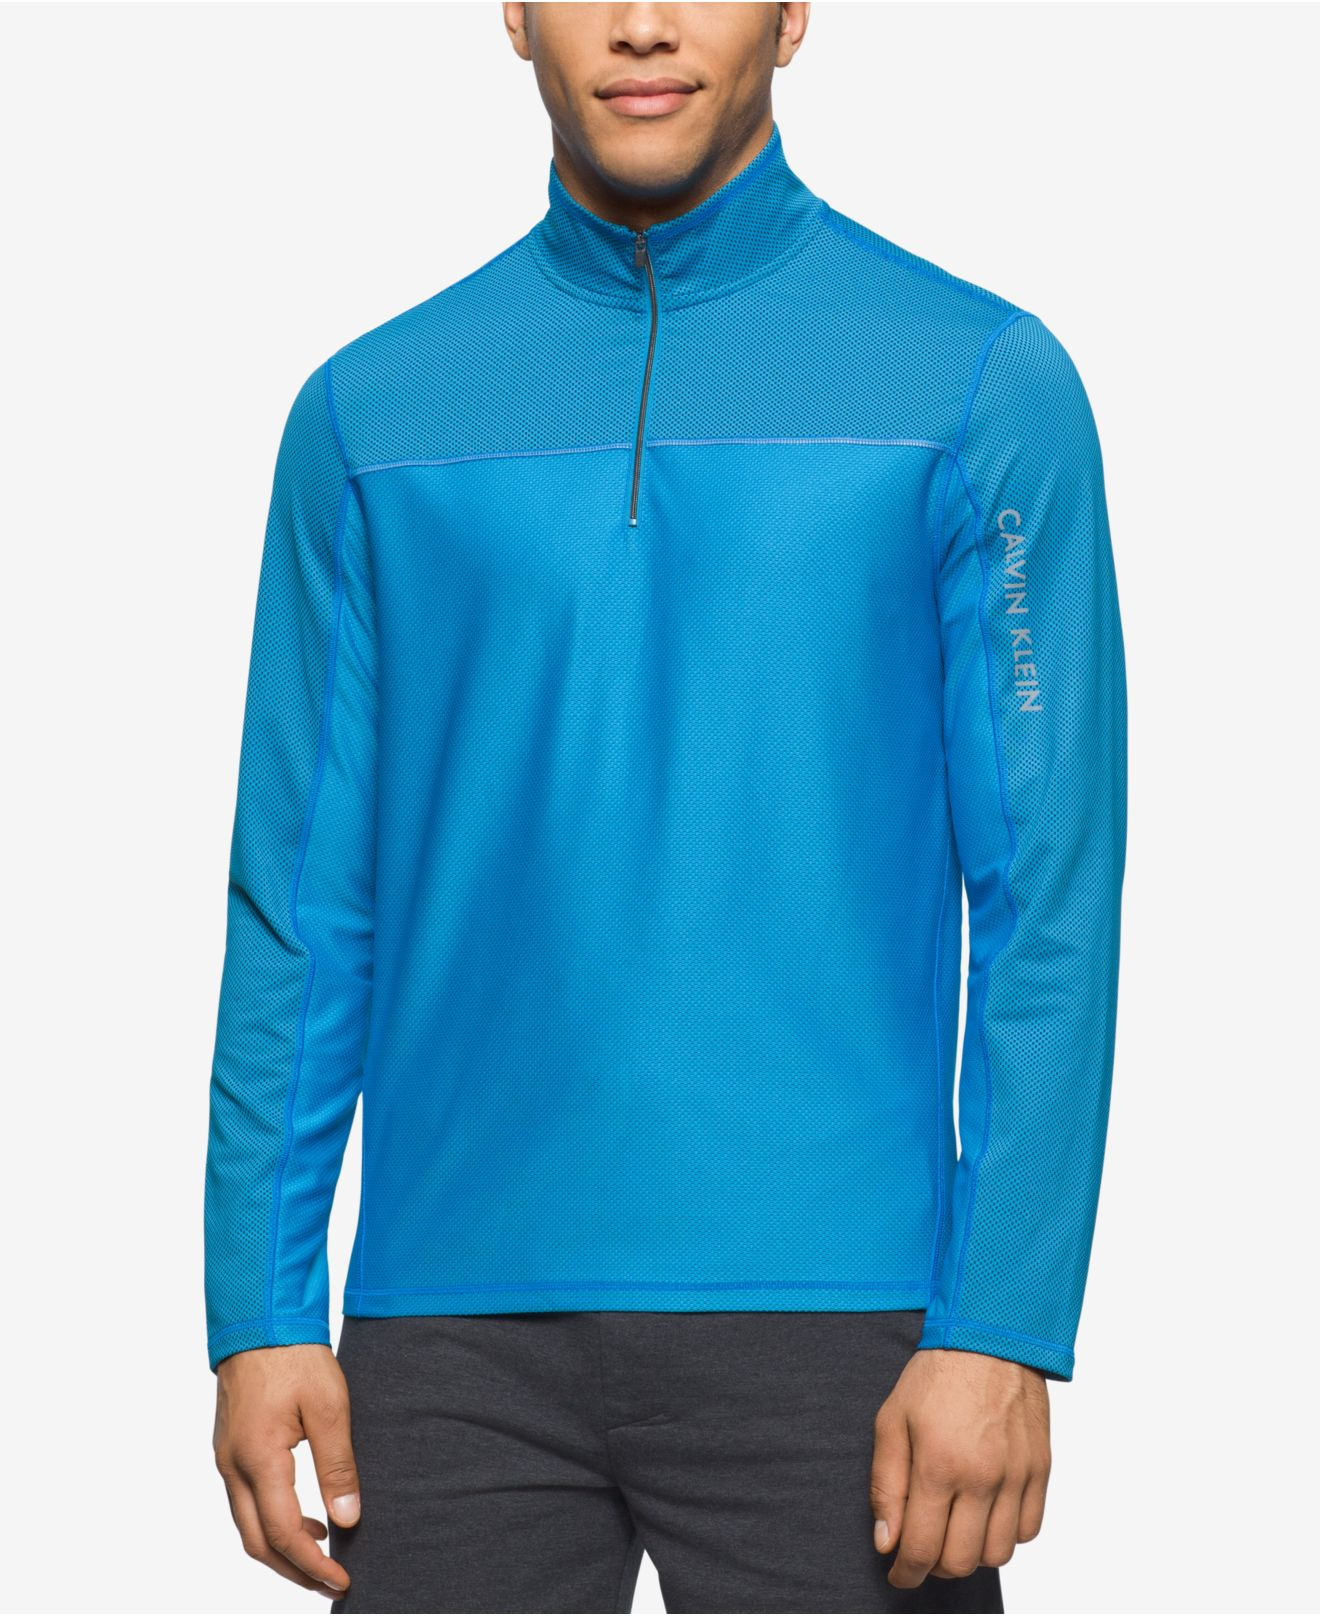 calvin klein performance men 39 s quarter zip pullover in blue for men lyst. Black Bedroom Furniture Sets. Home Design Ideas